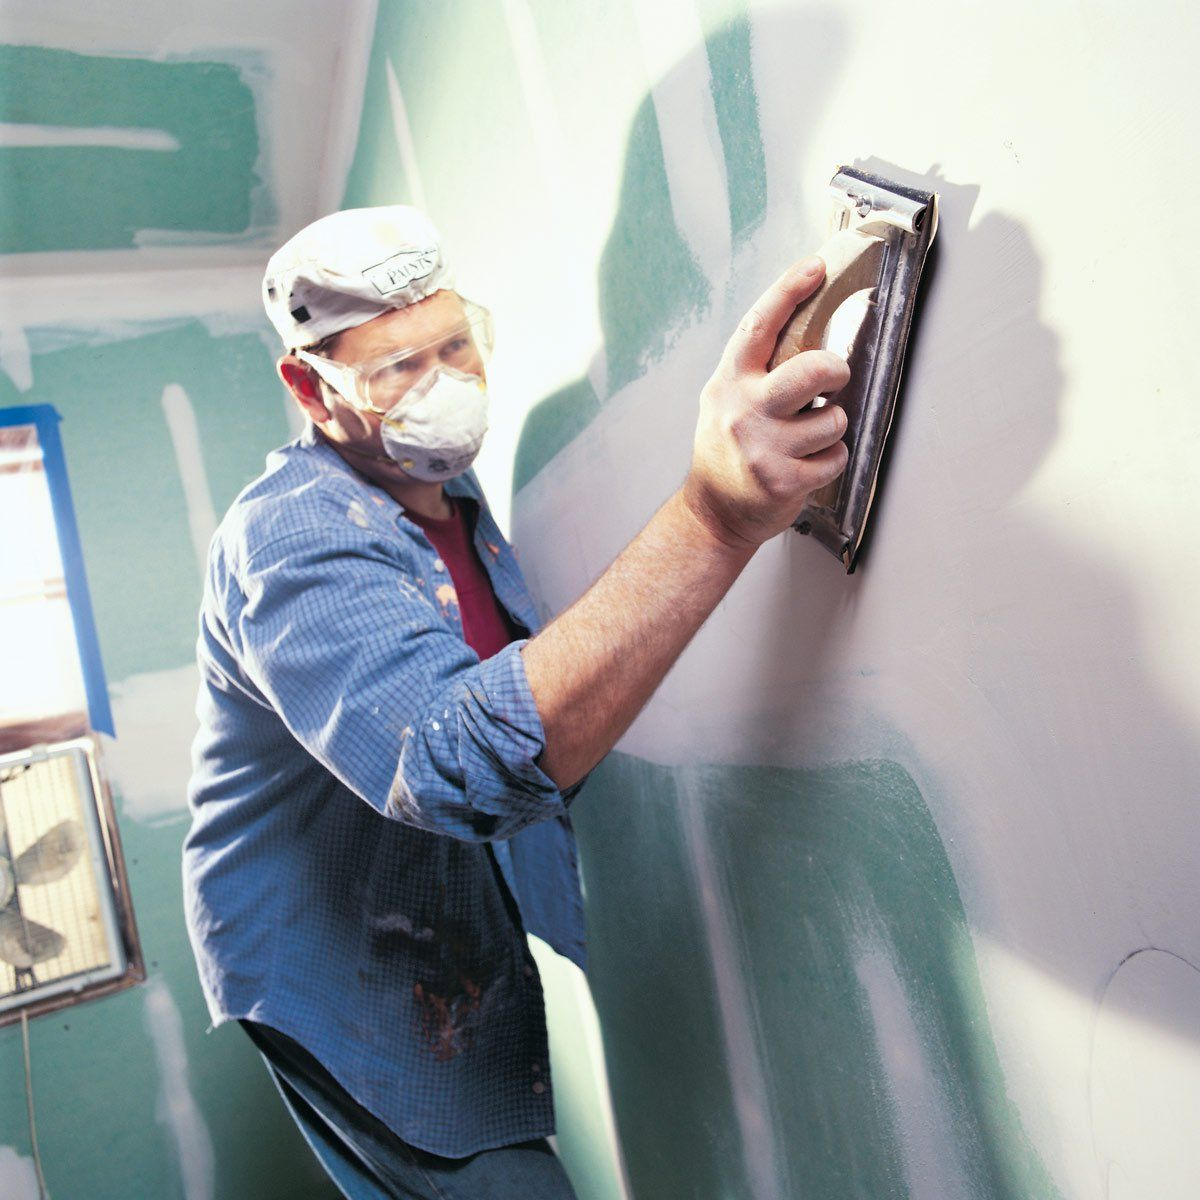 How To Sand Drywall Home Improvement Home Improvement Projects Home Repair